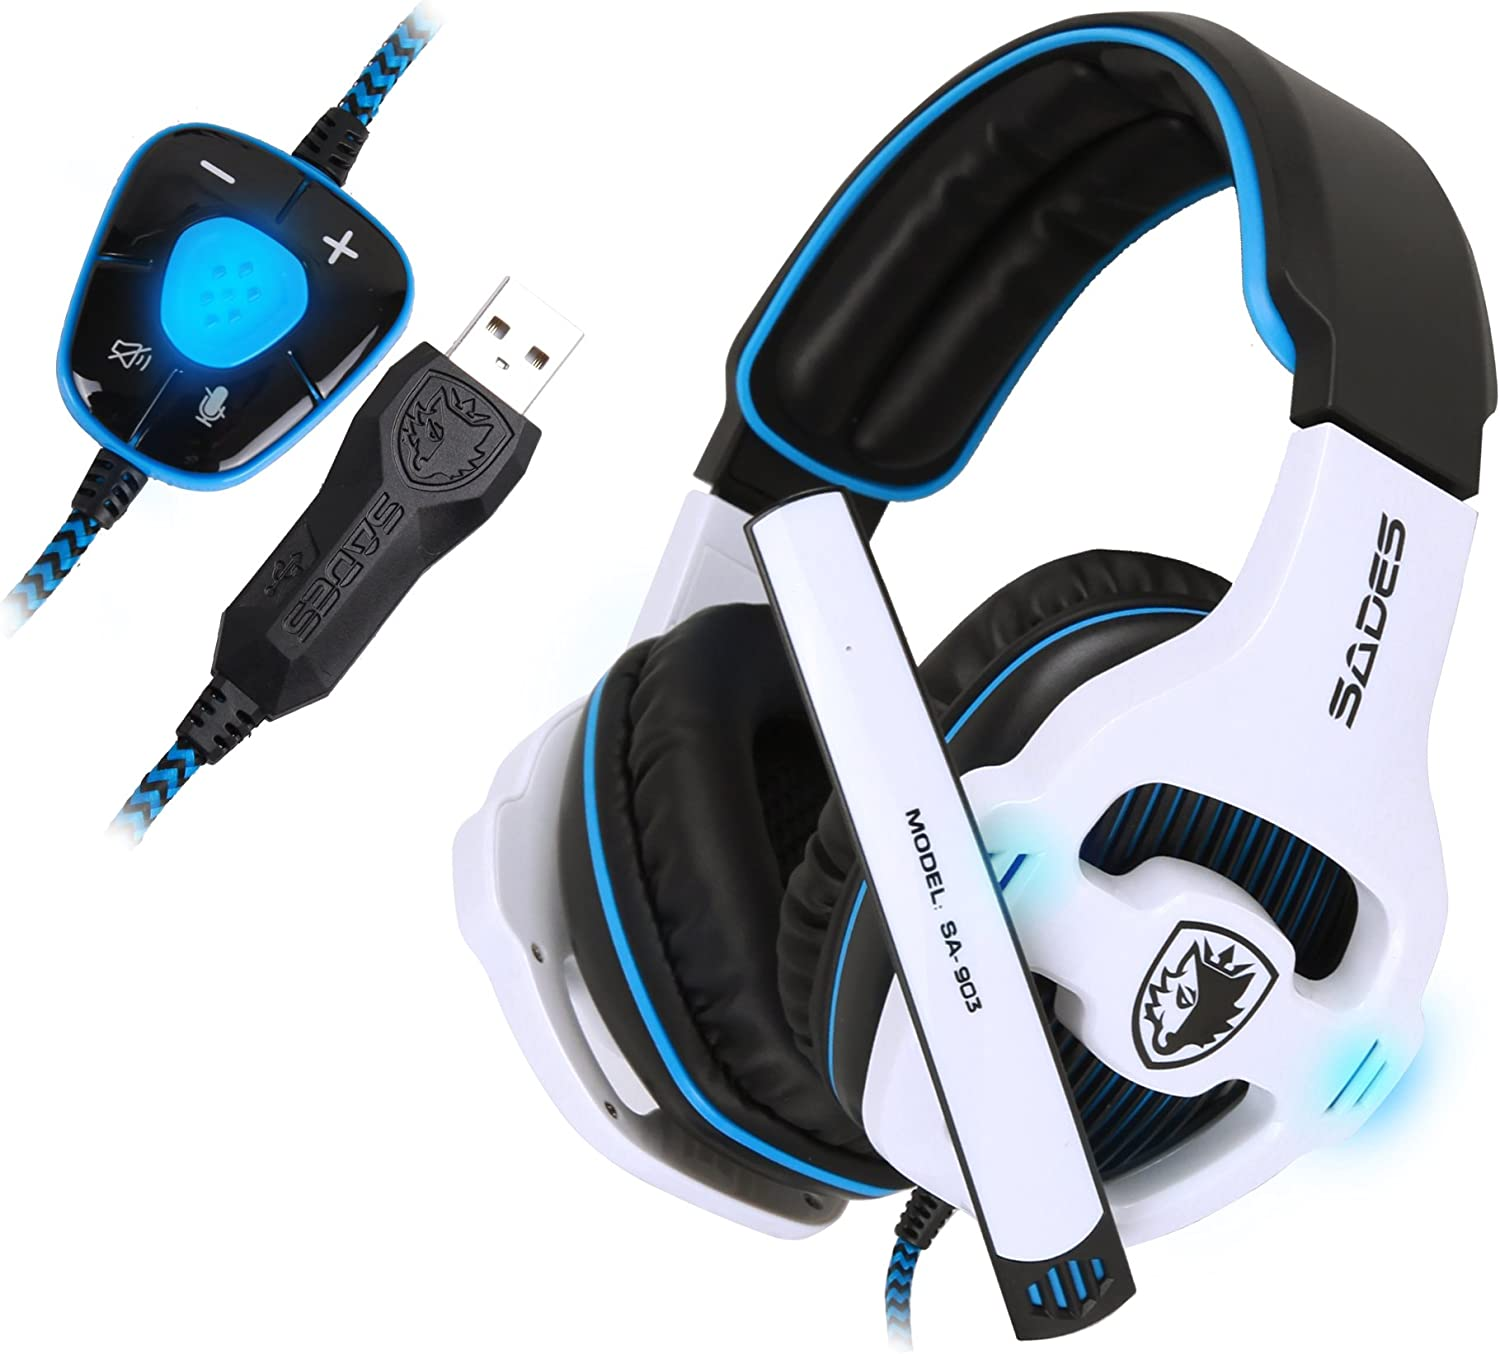 SADES Stereo 7.1 Surround Pro USB Gaming Headset with Mic Headband Headphone White